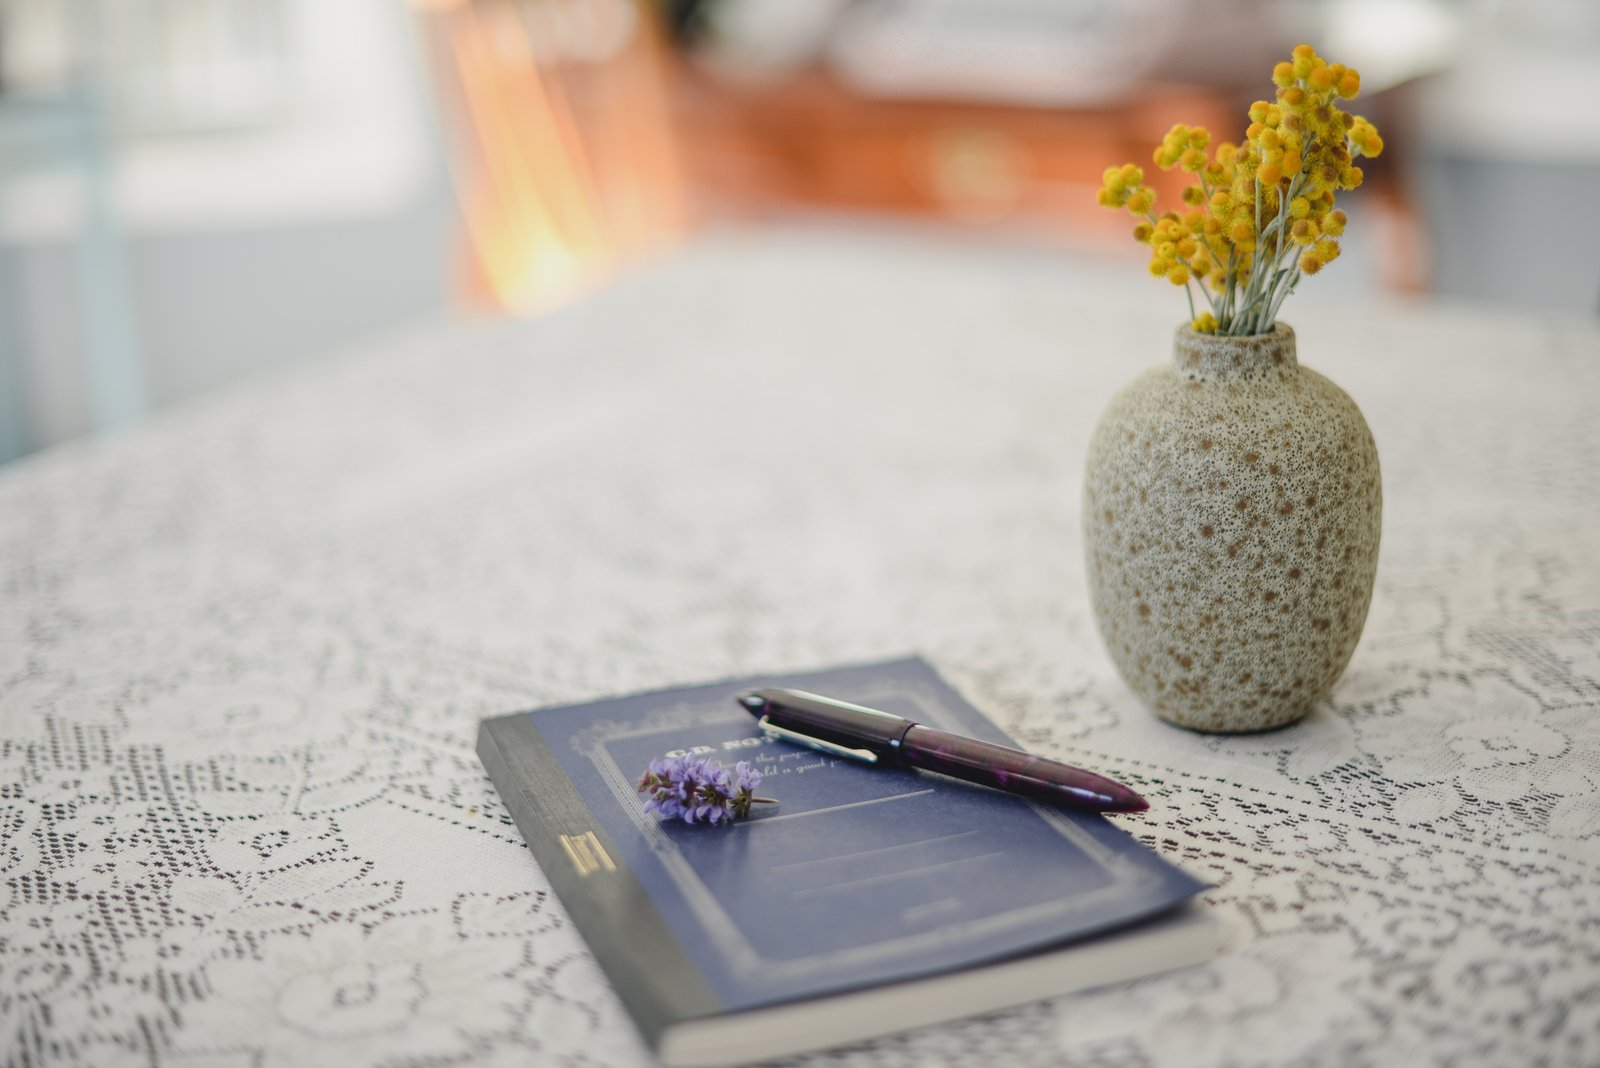 notebook, fountain pen, and flowers